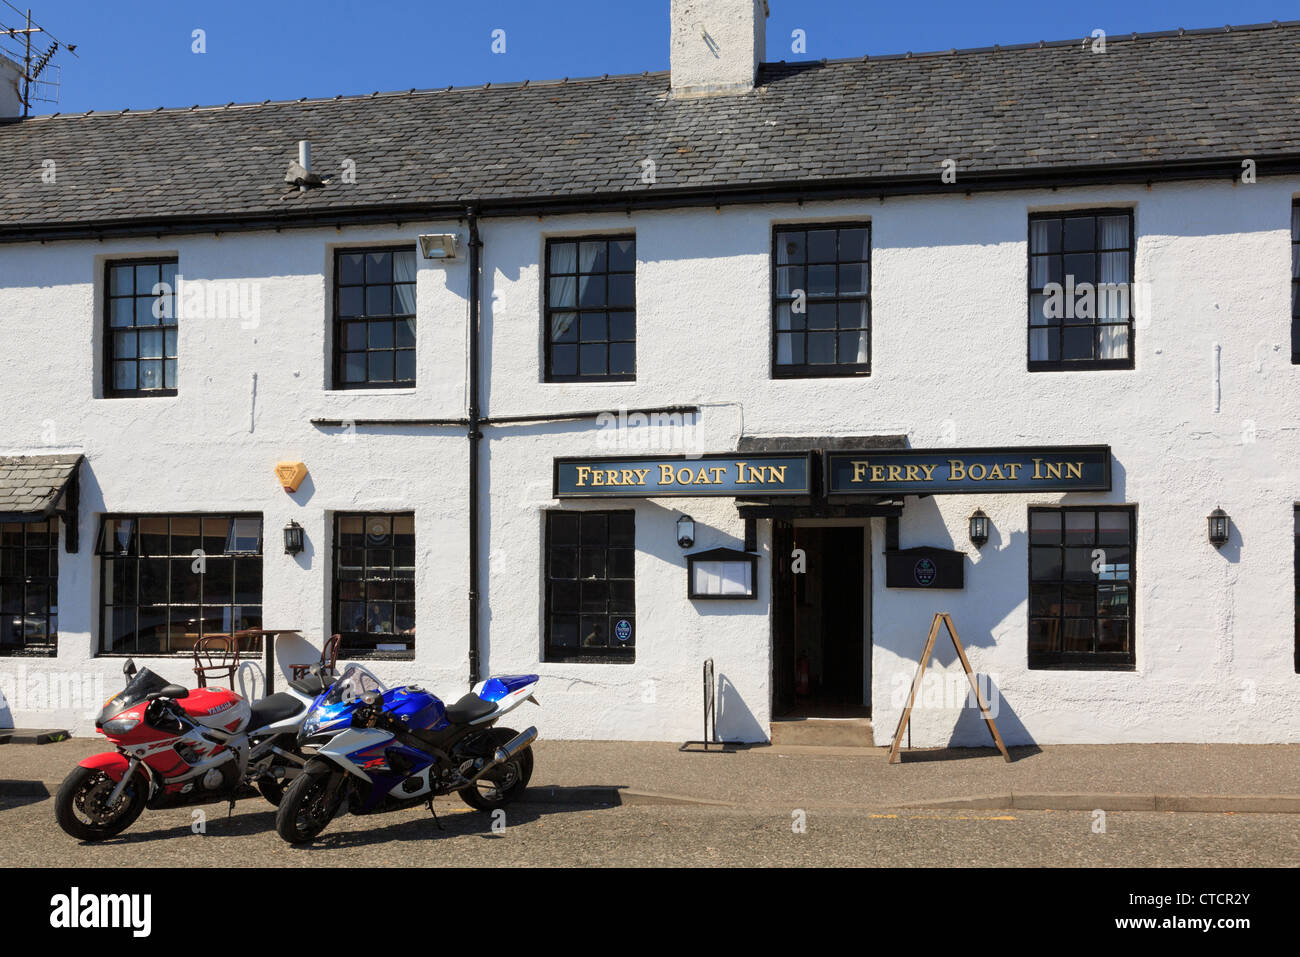 The Ferry Boat Inn traditional town pub in Ullapool, Ross and Cromarty, Scotland, UK, Britain - Stock Image